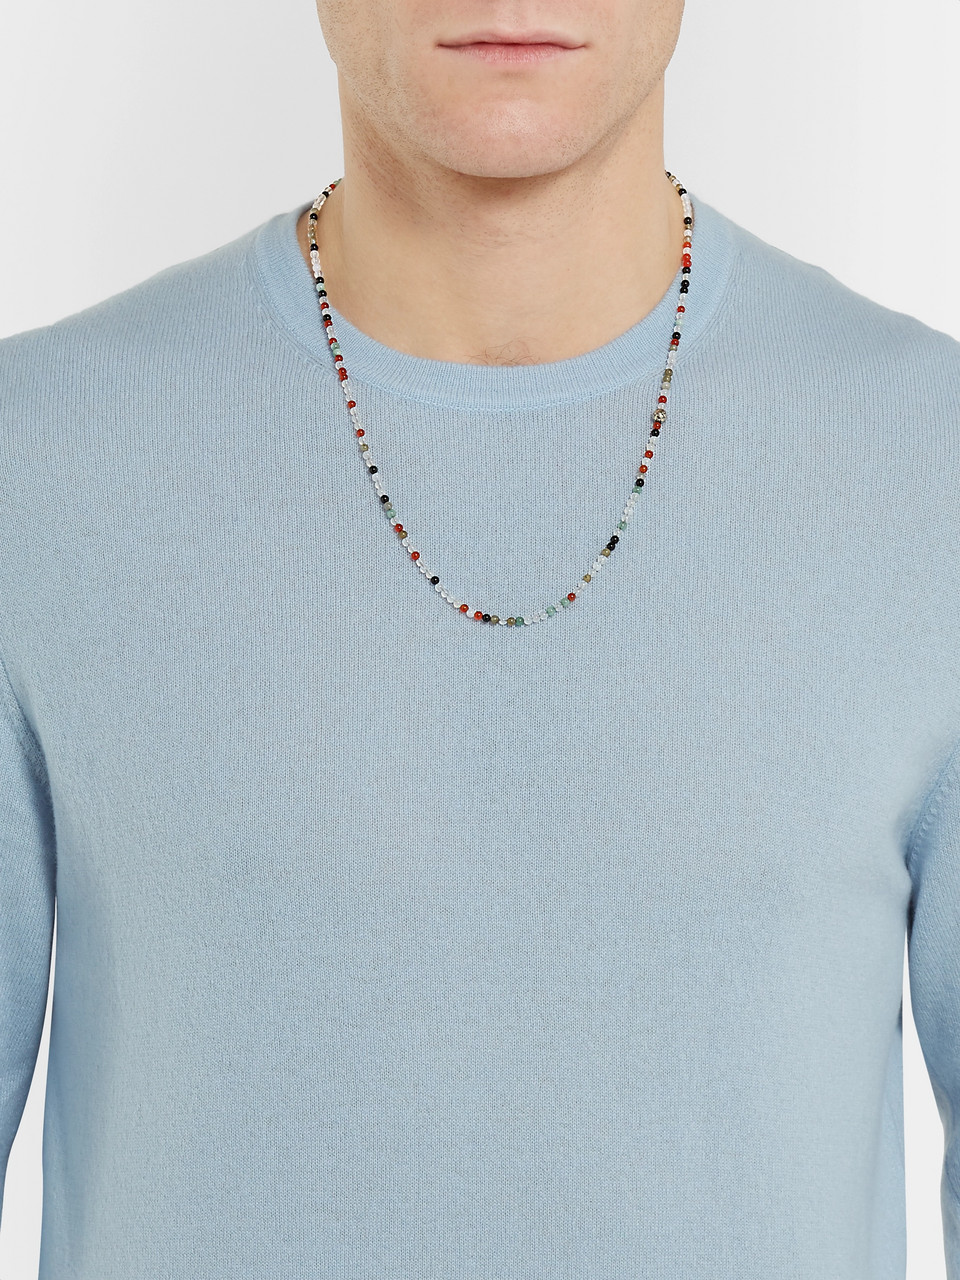 Bottega Veneta Silver Agate Necklace